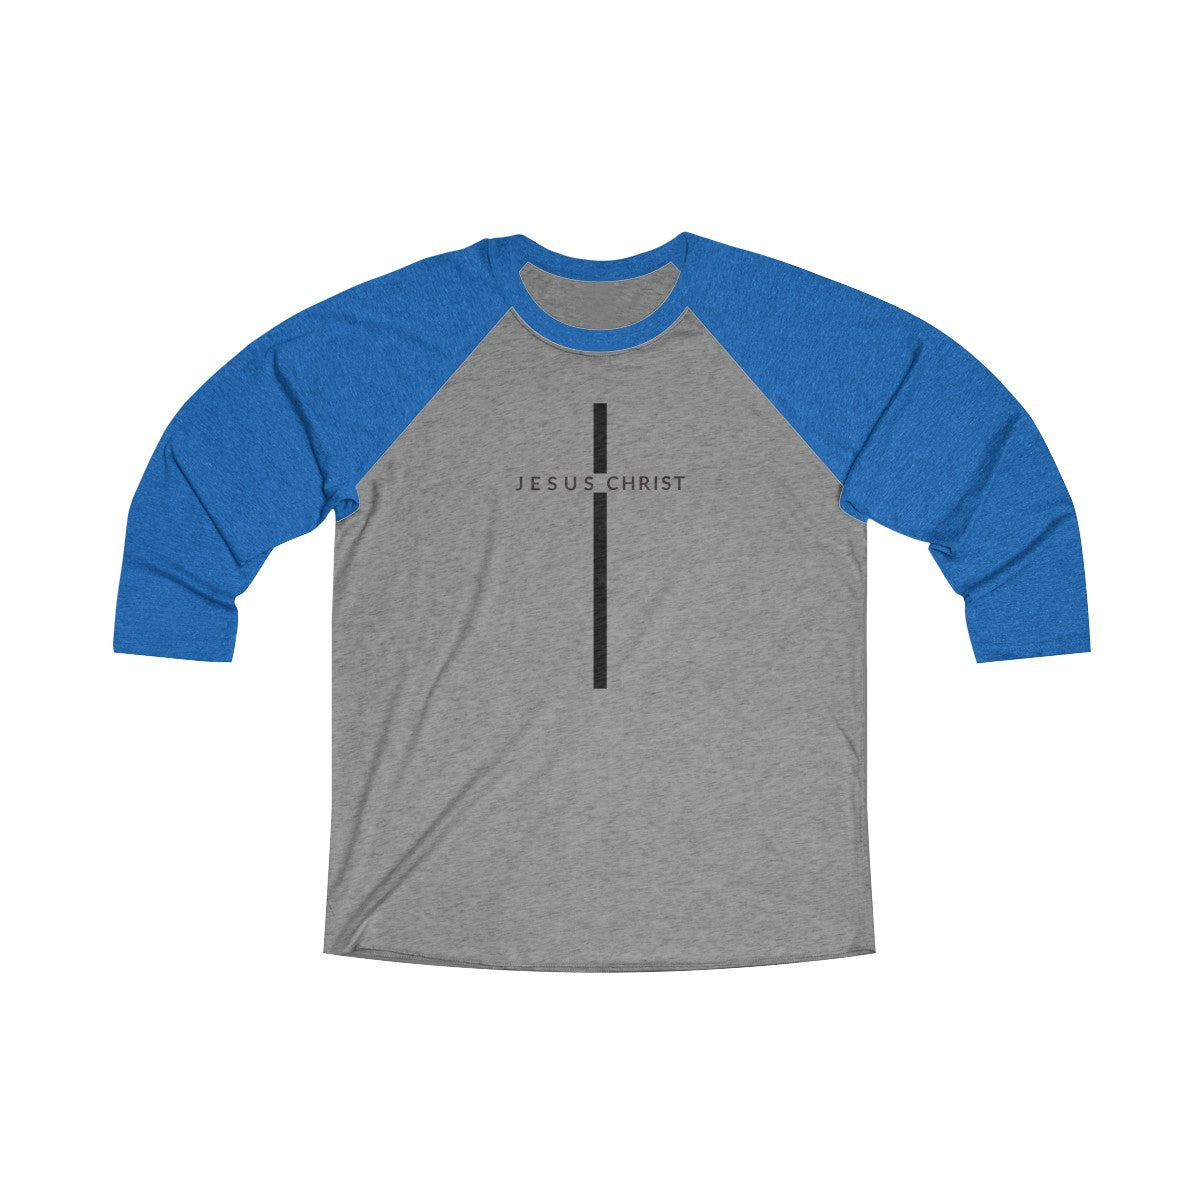 Jesus Christ Cross Unisex Tri-Blend 3/4 Raglan Tee